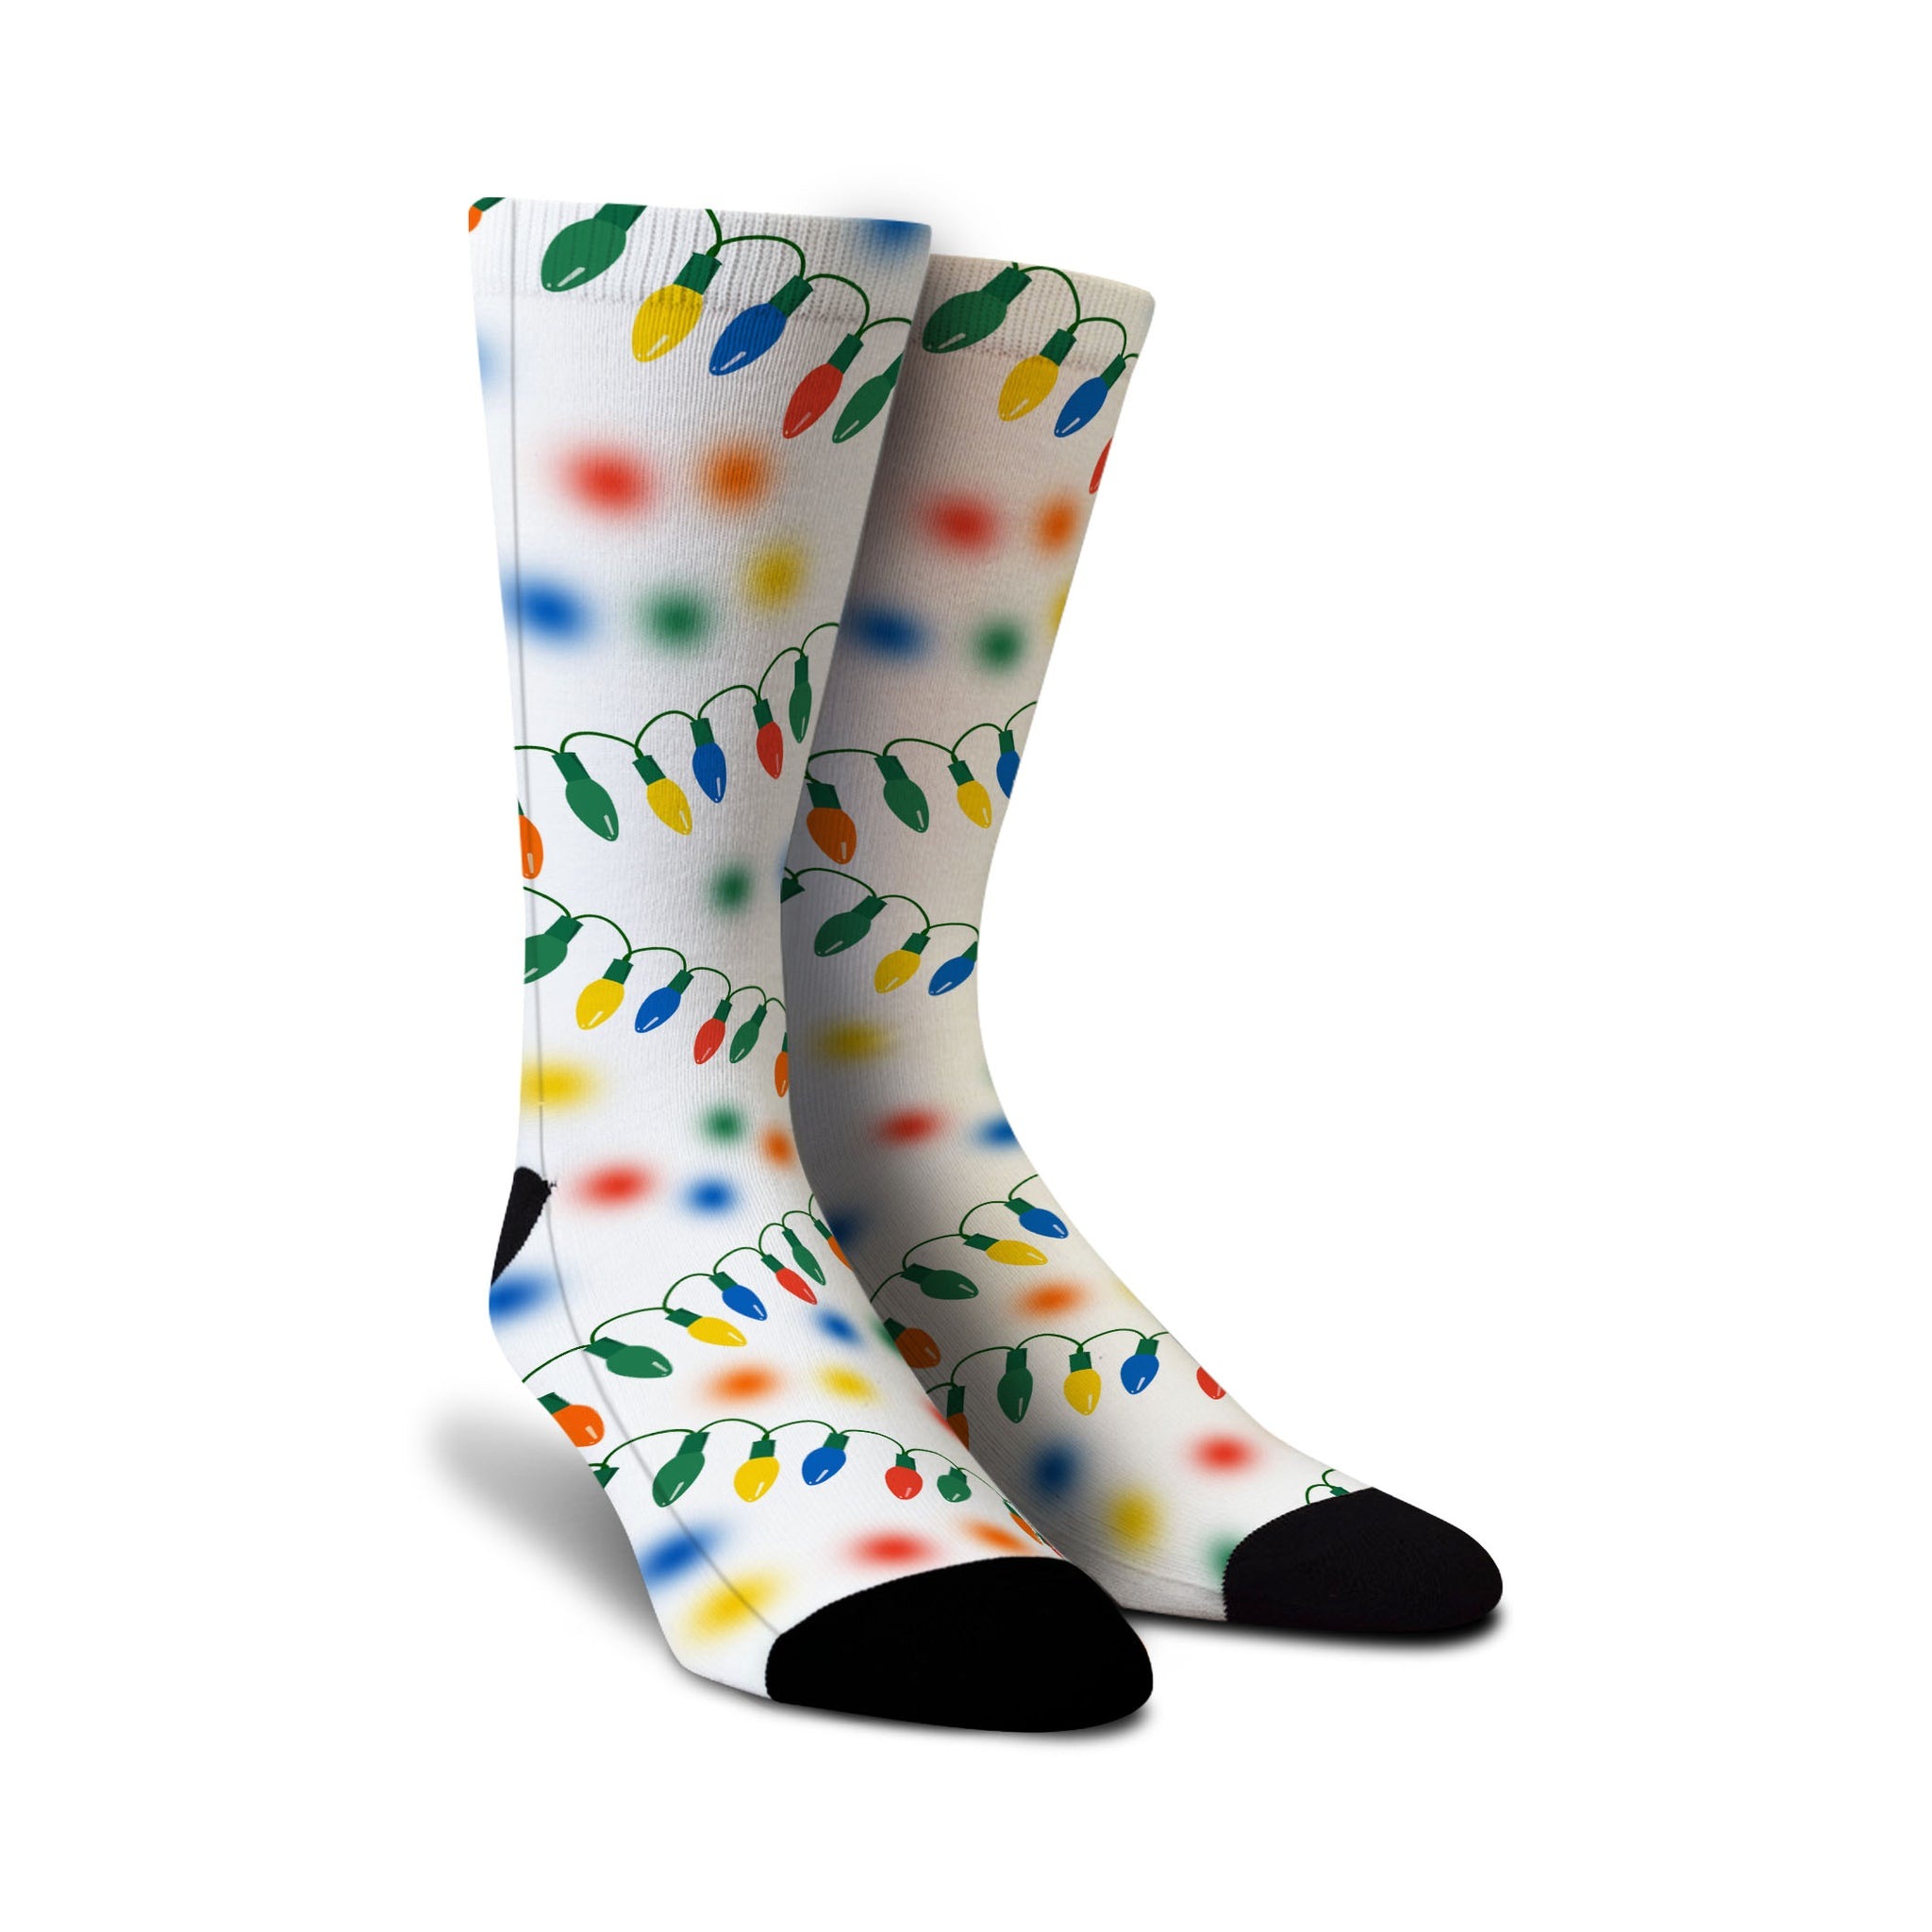 Cool designer men's women's ladies boys kids crew novelty socks with holiday christmas lights